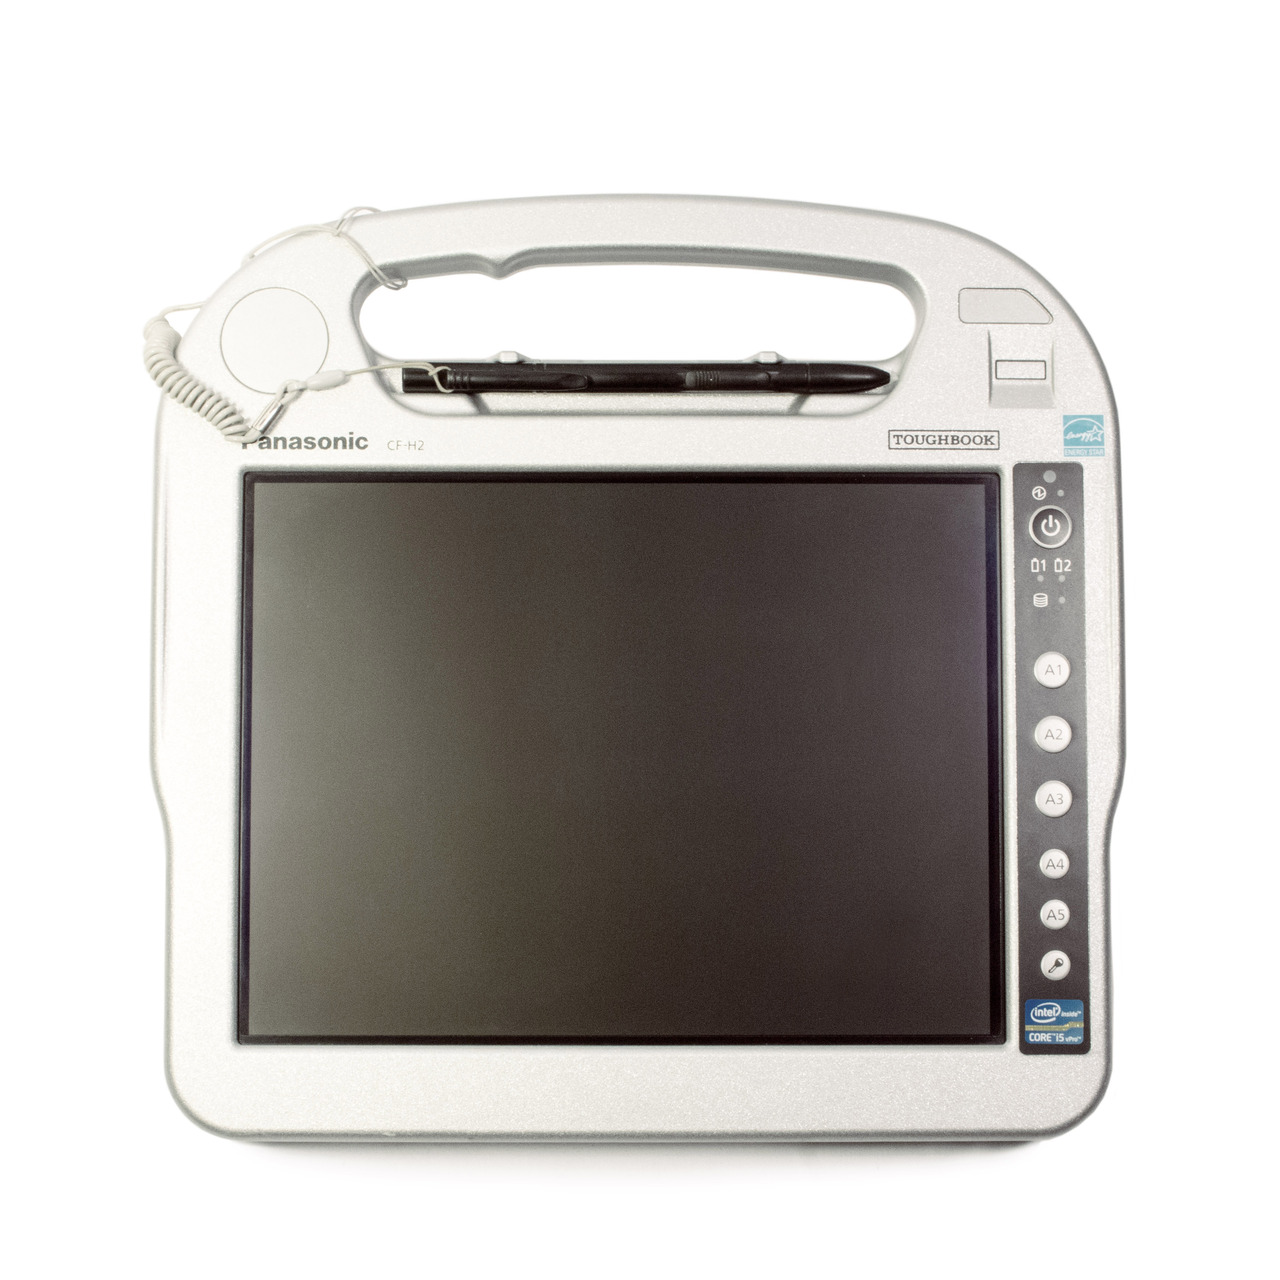 95f0c47b1b1 ... Array - panasonic toughbook h2 manual rh panasonic toughbook h2 manual  bitlab solutions